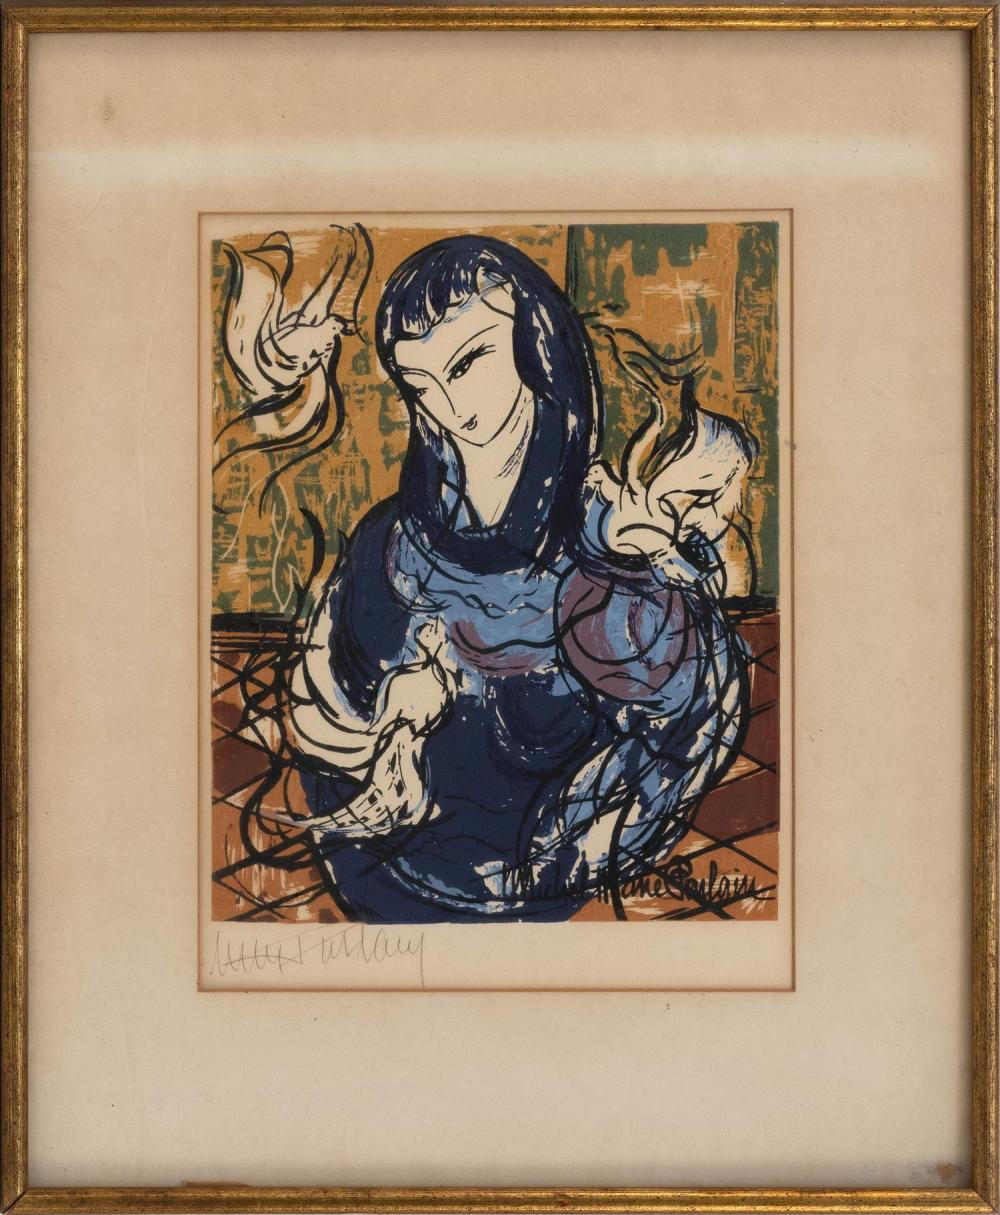 "MICHEL-MARIE POULAIN, France, 1906-1991, Woman with doves., Silkscreen on paper, 10"" x 8.5"". Framed 18.5"" x 15""."